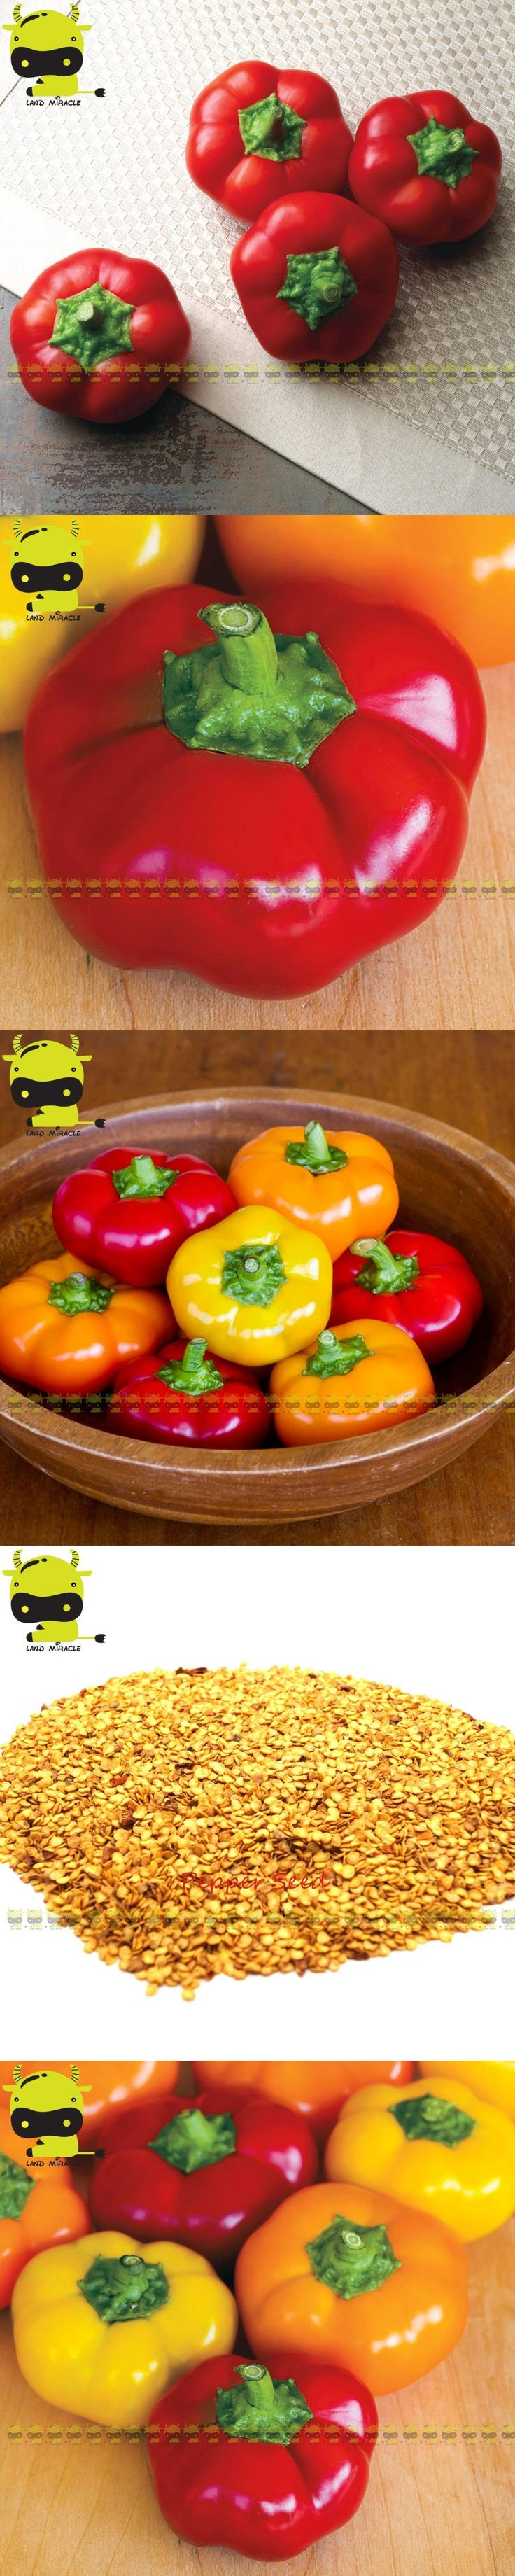 100% Real Meaty Hot Chilli Pepper Mixed Seed, 100 Seeds/Pack, NON GMO Edible Vegetable Capsicum annuum Annual Bonsai For Home